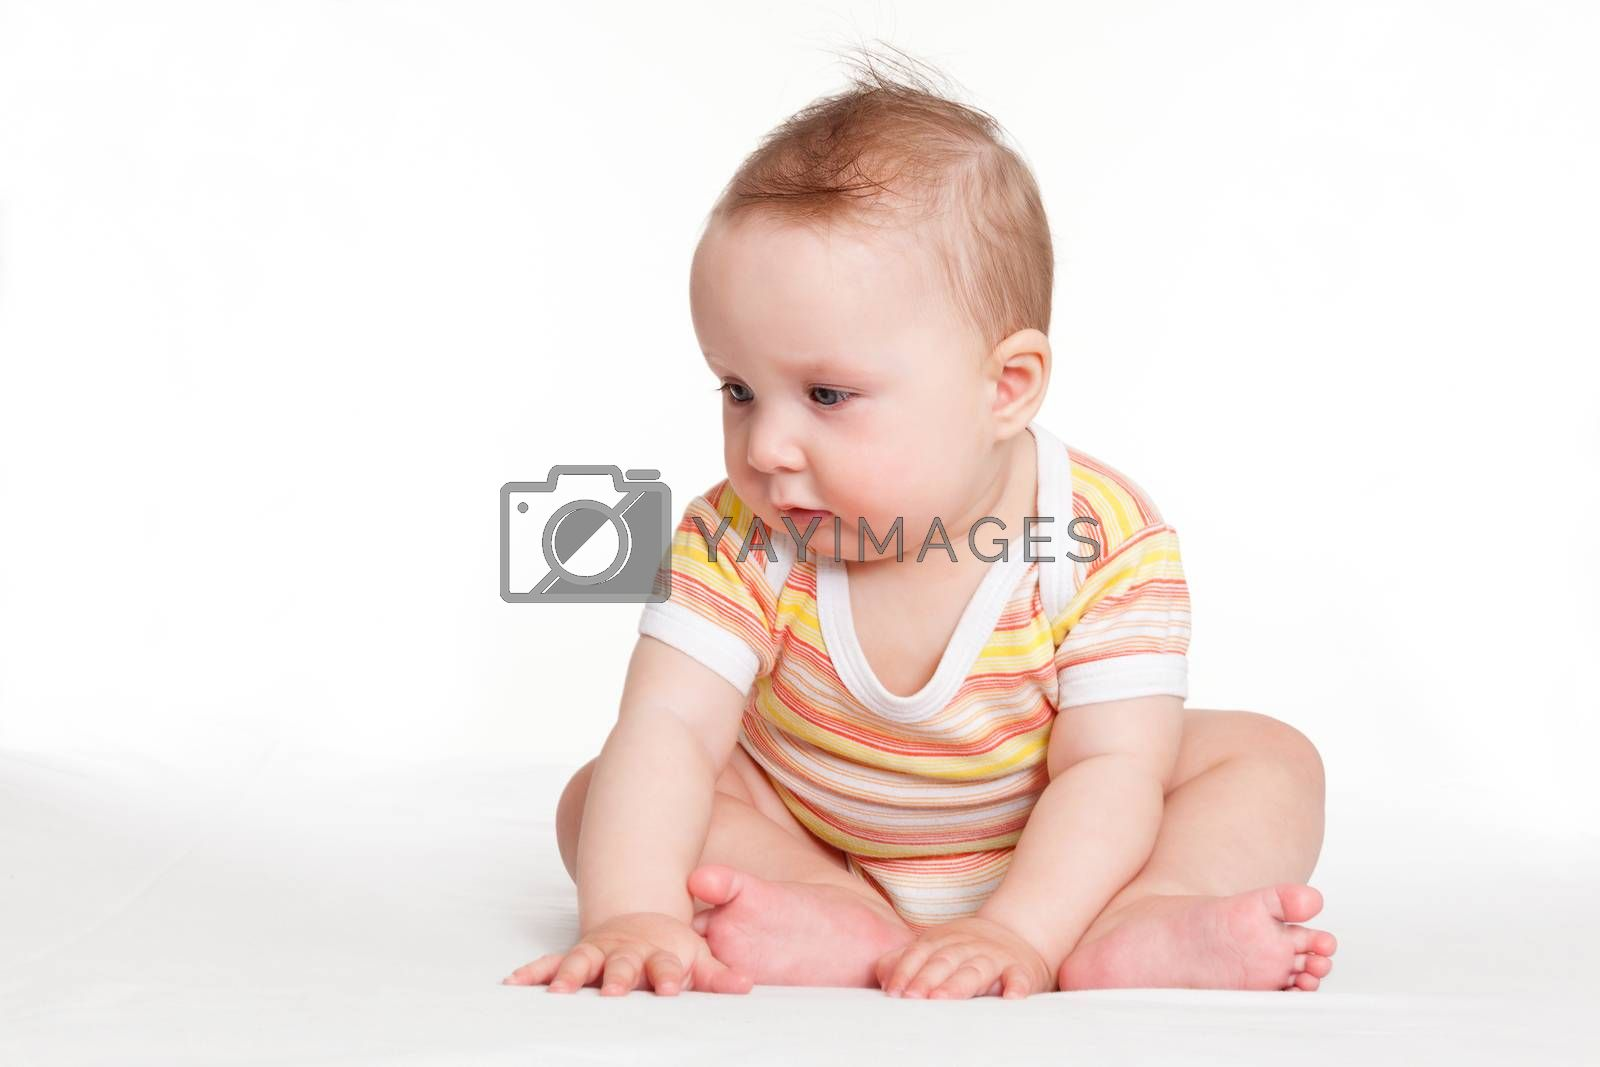 Cute small baby sitting and looking isolated on white background. Happy tiny adorable newborn baby.